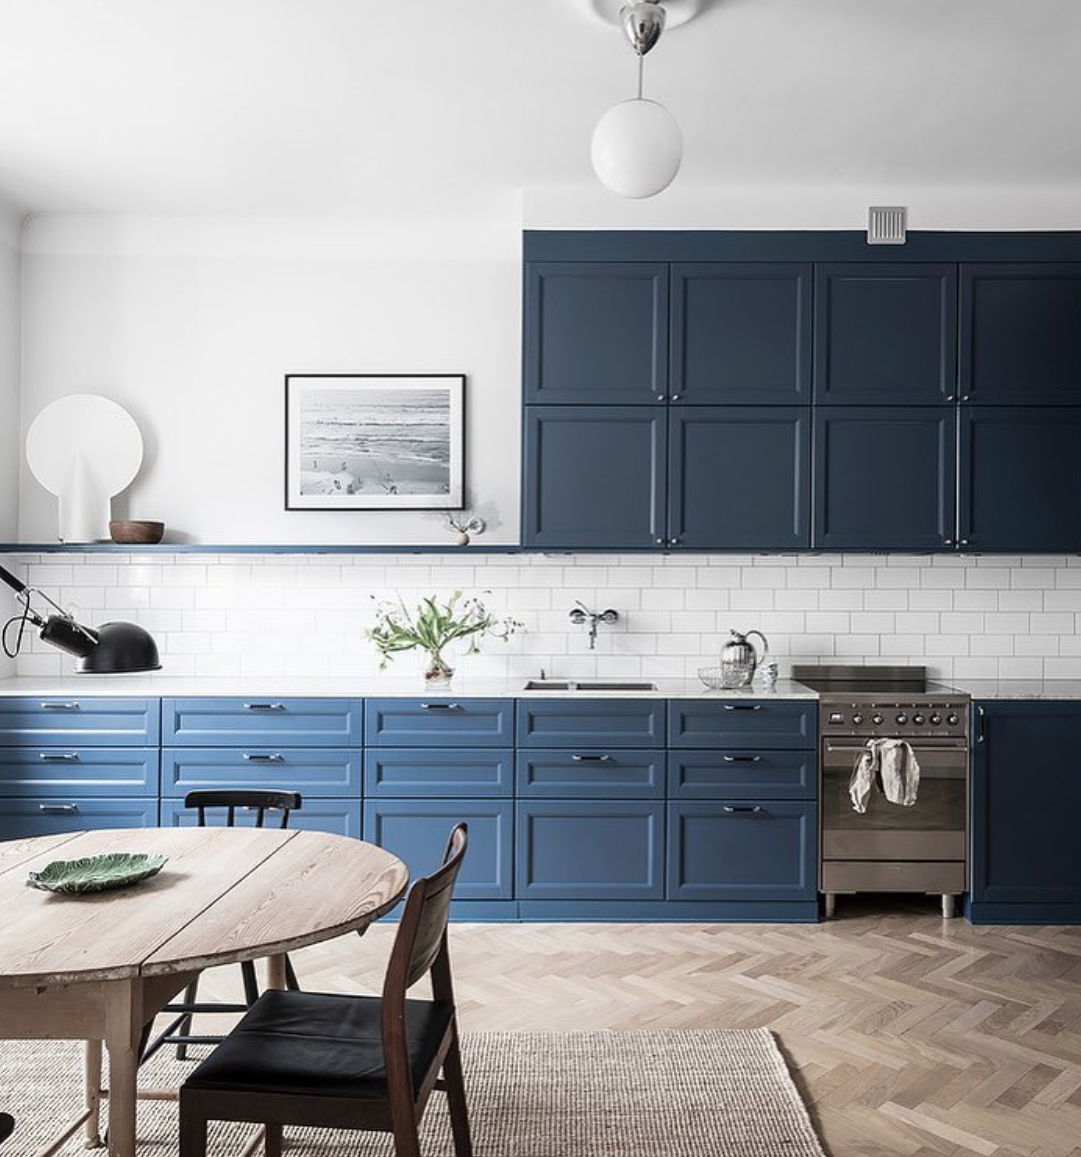 Blue and white kitchen diner with parquet wood floor